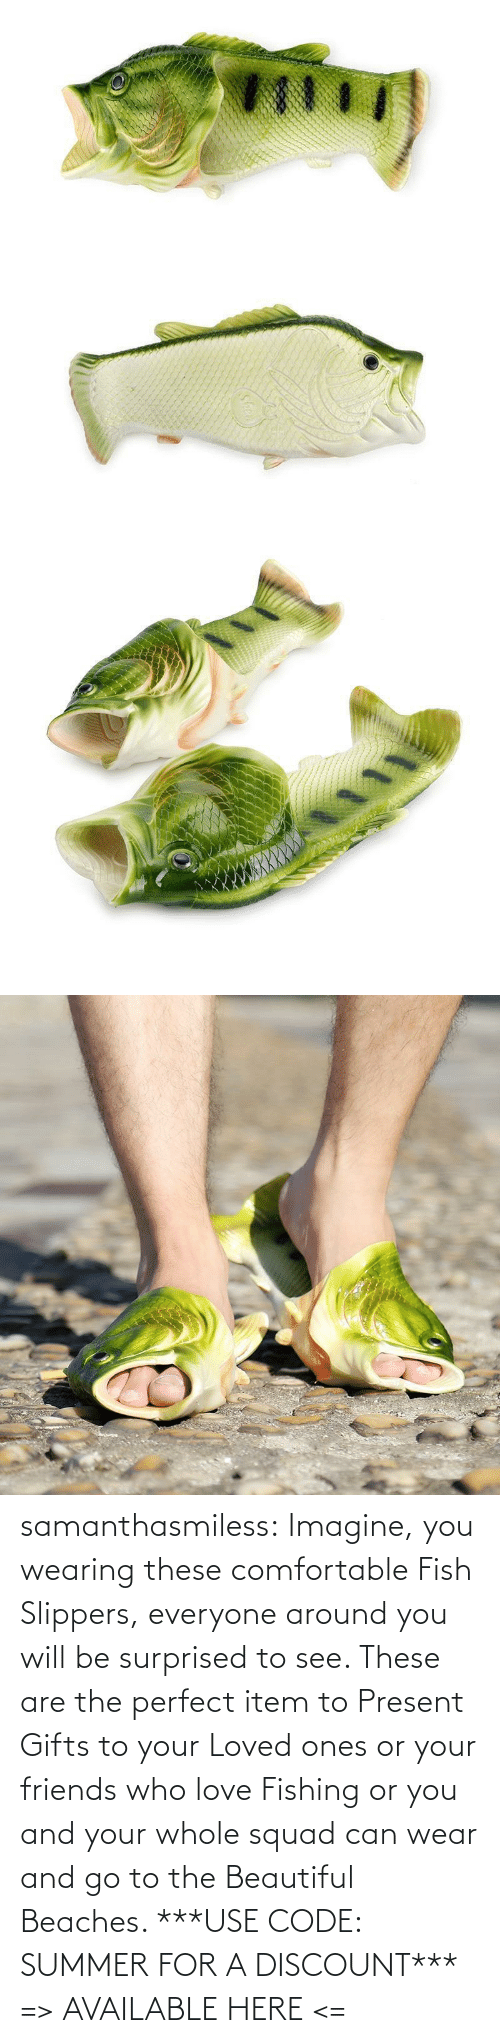 Fish: samanthasmiless: Imagine, you wearing these comfortable Fish Slippers, everyone around you will be surprised to see. These are the perfect item to Present Gifts to your Loved ones or your friends who love Fishing or you and your whole squad can wear and go to the Beautiful Beaches.  ***USE CODE: SUMMER FOR A DISCOUNT*** => AVAILABLE HERE <=